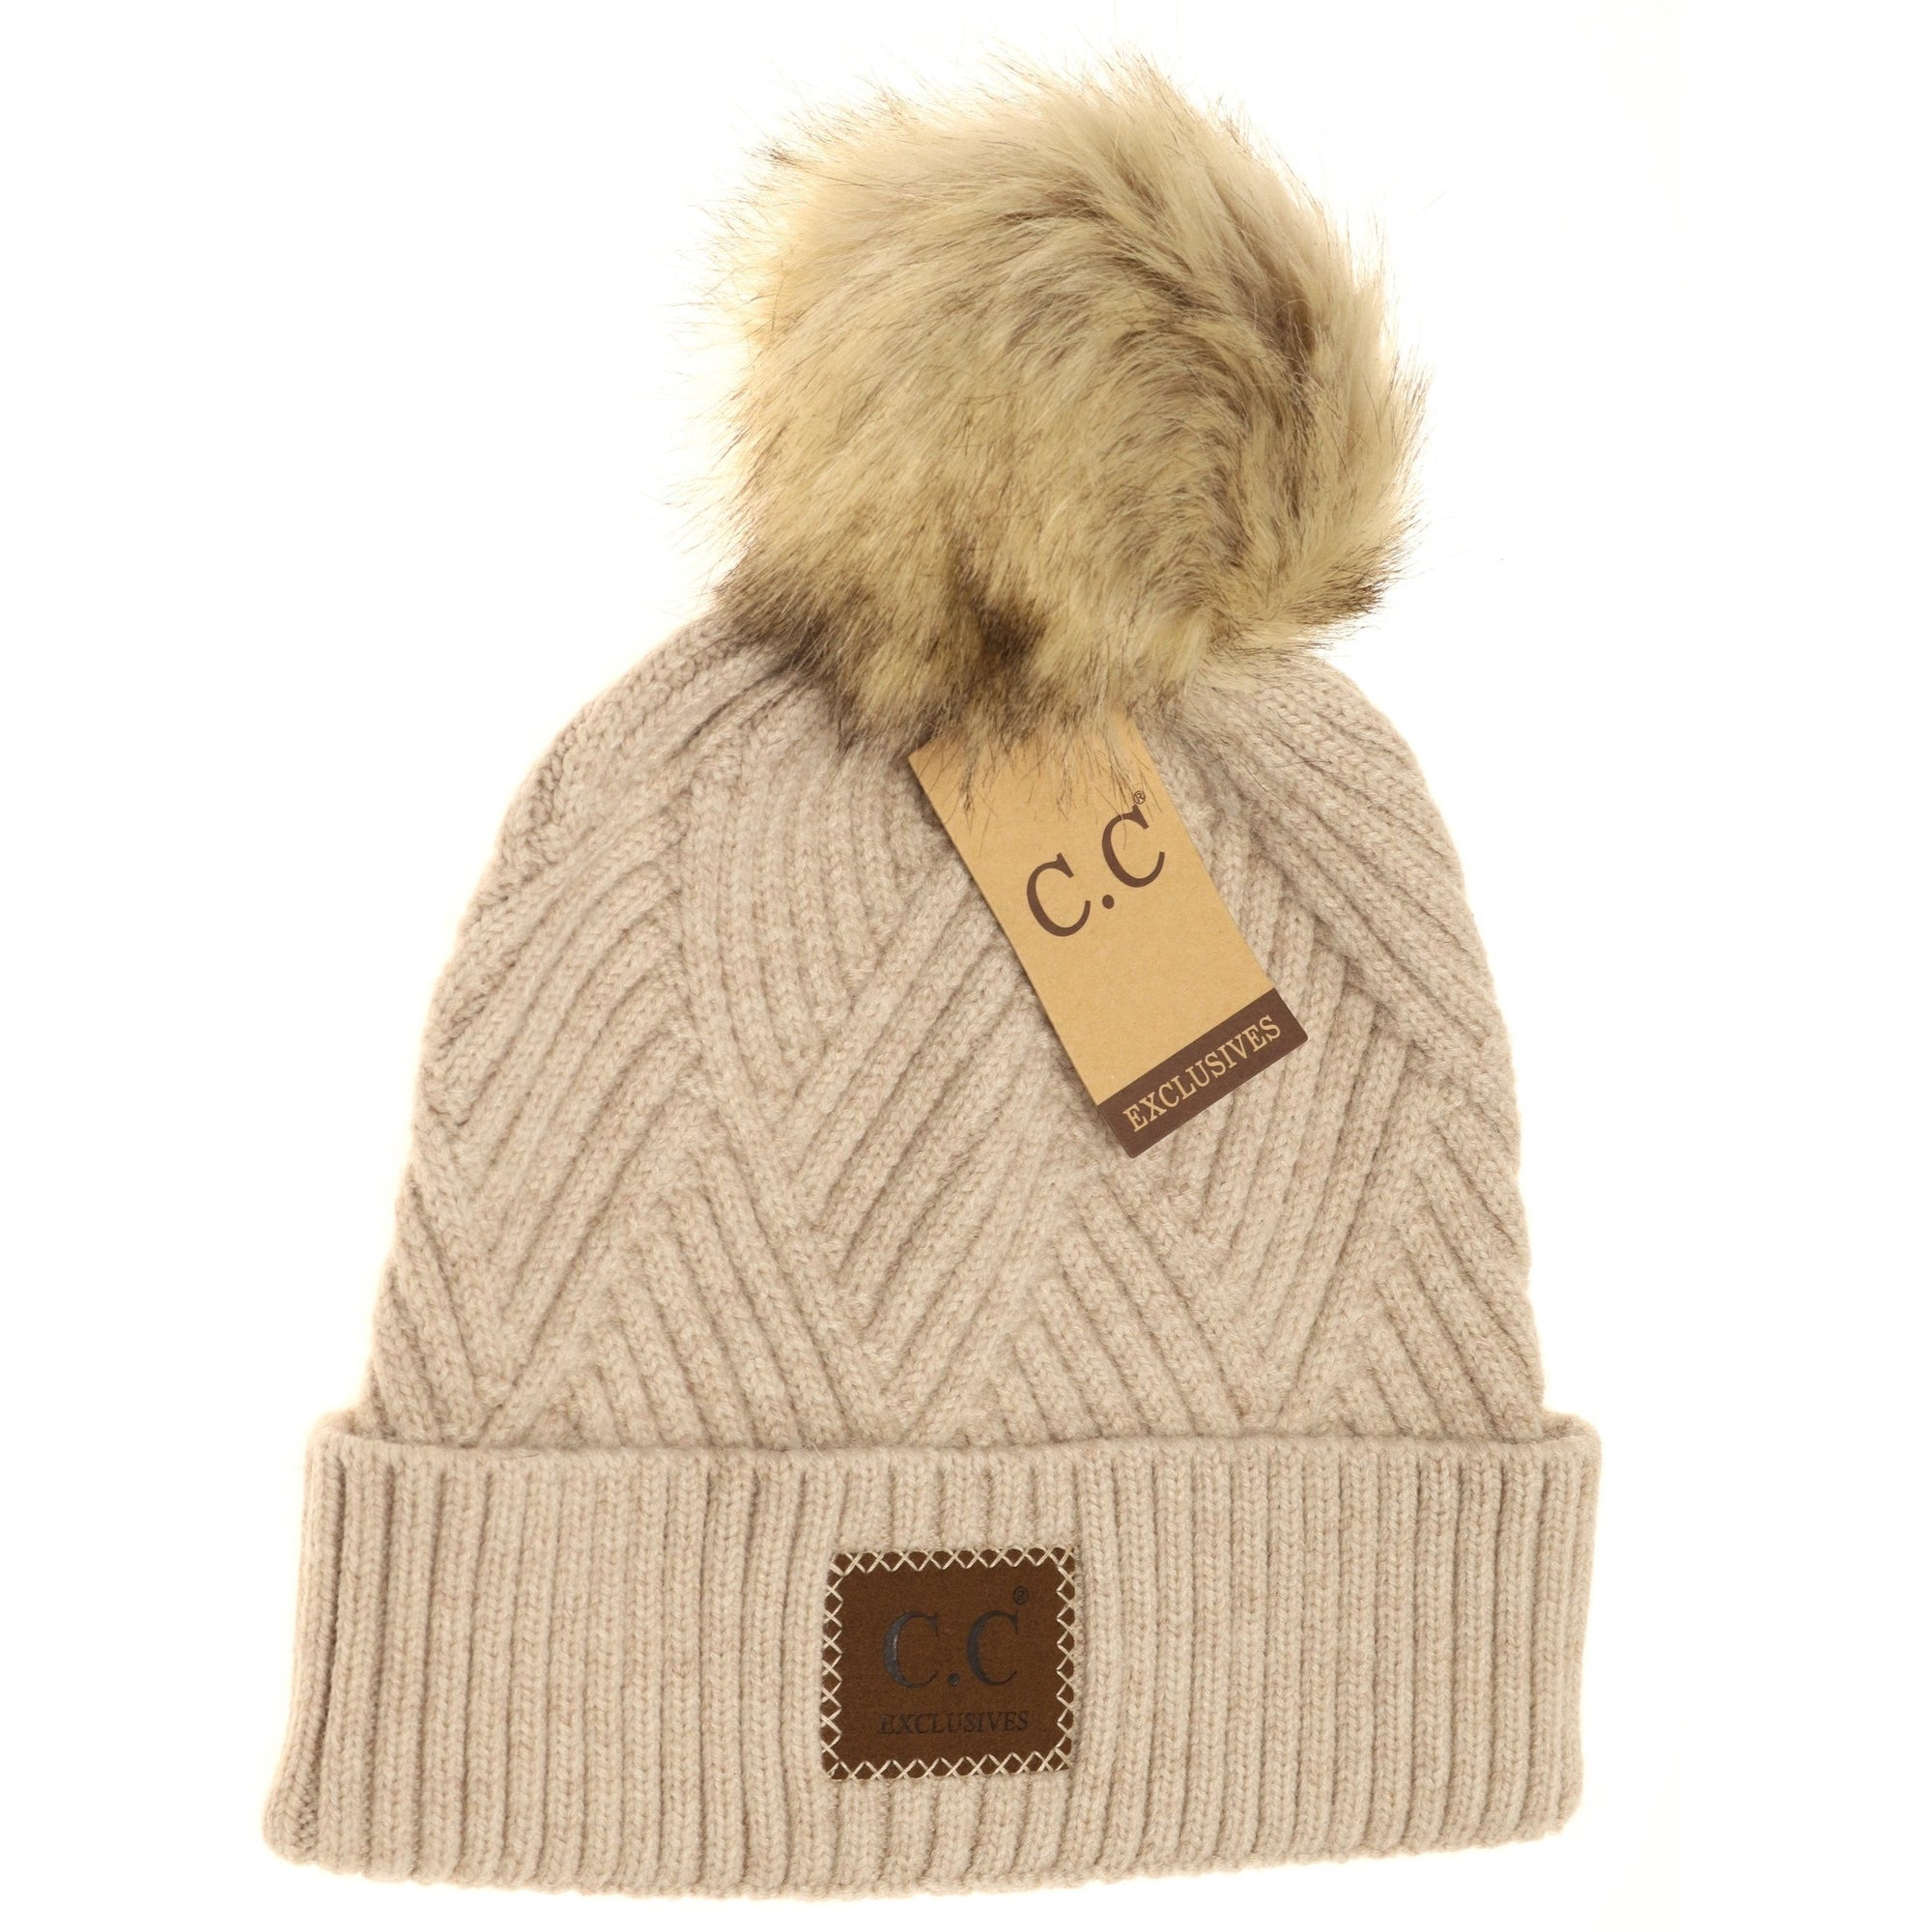 CC Heathered Pom Beanie-Beige Mix